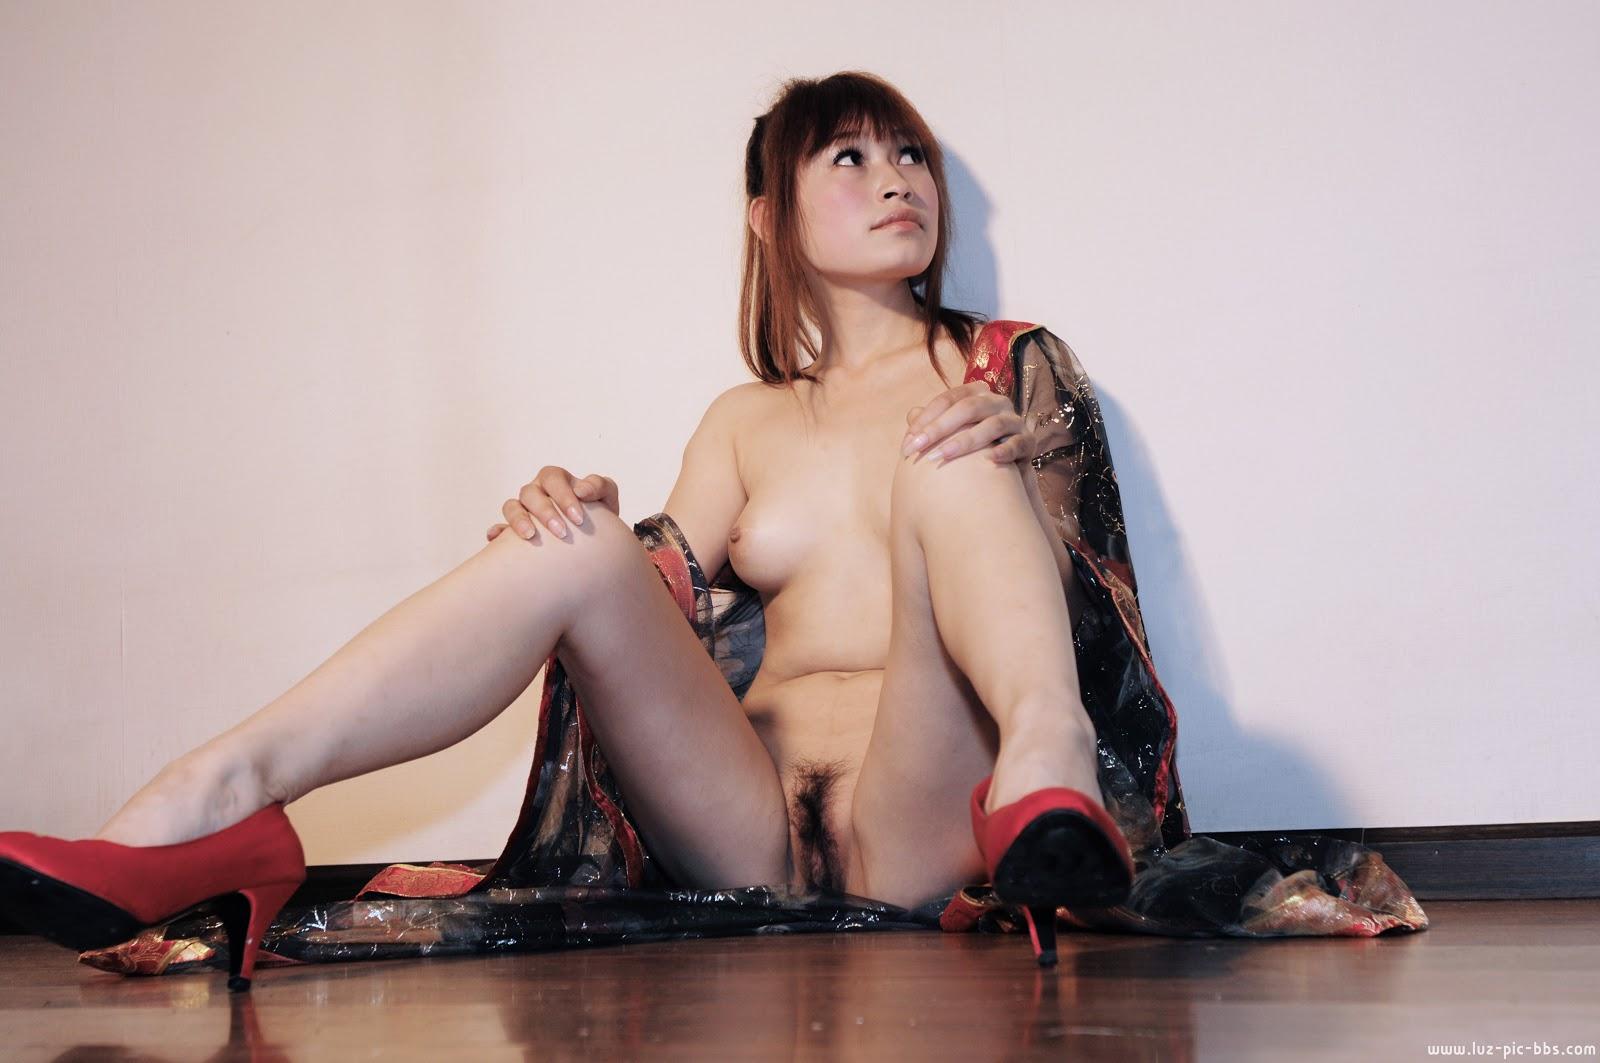 Chinese Nude_Art_Photos_-_263_-_YangYang_Vol_12.rar Chinese_Nude_Art_Photos_-_263_-_YangYang_Vol_12.rar.DSC_7459